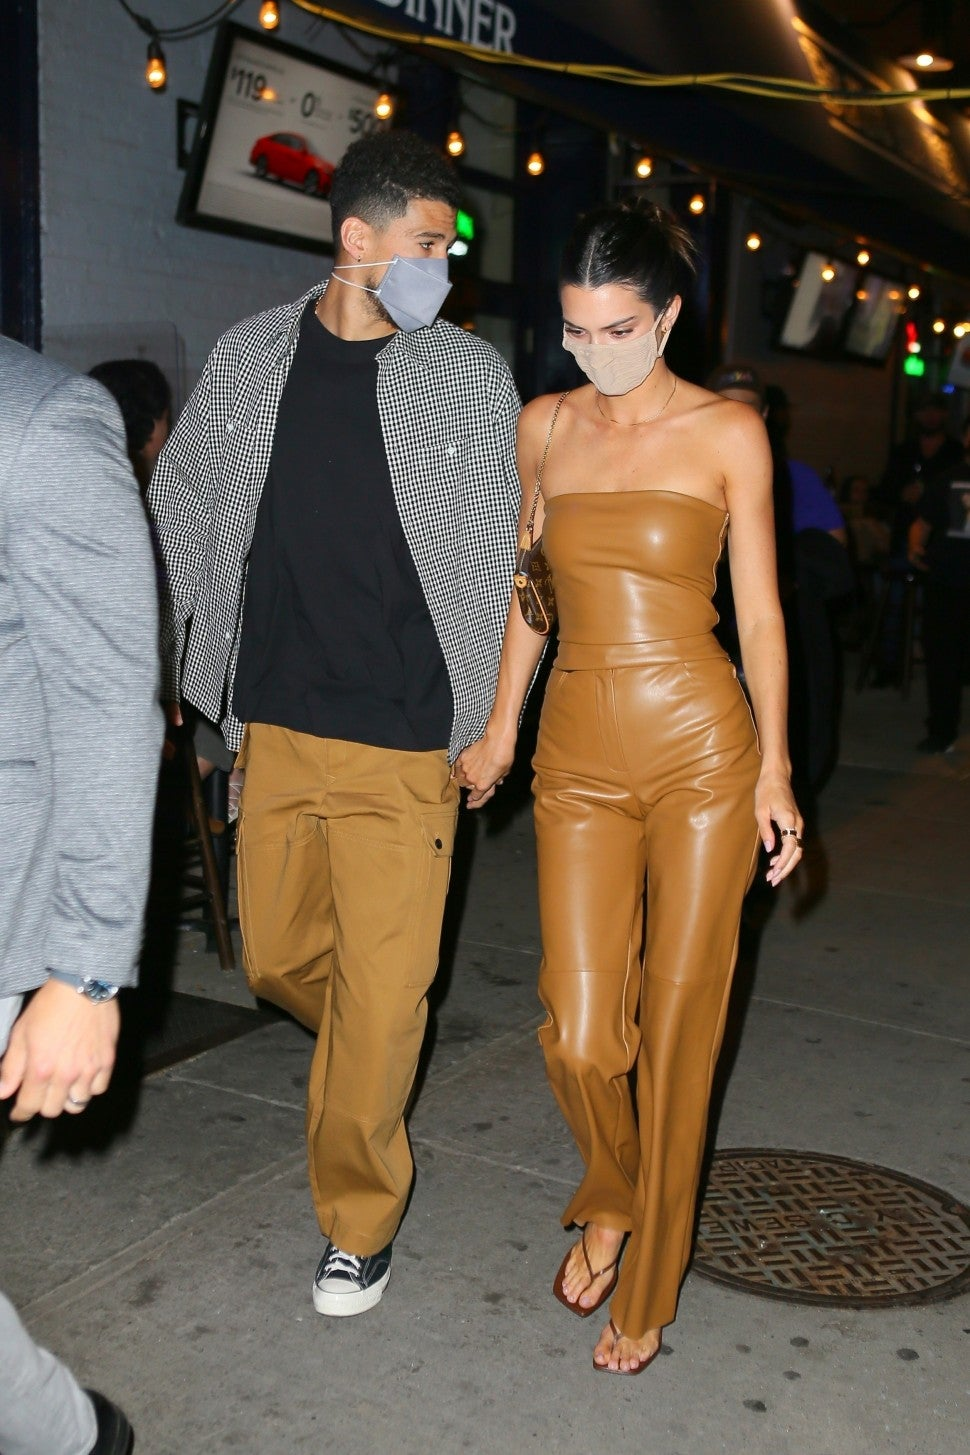 After so many rumors the romance between Kendall Jenner and Devin Booker is confirmed